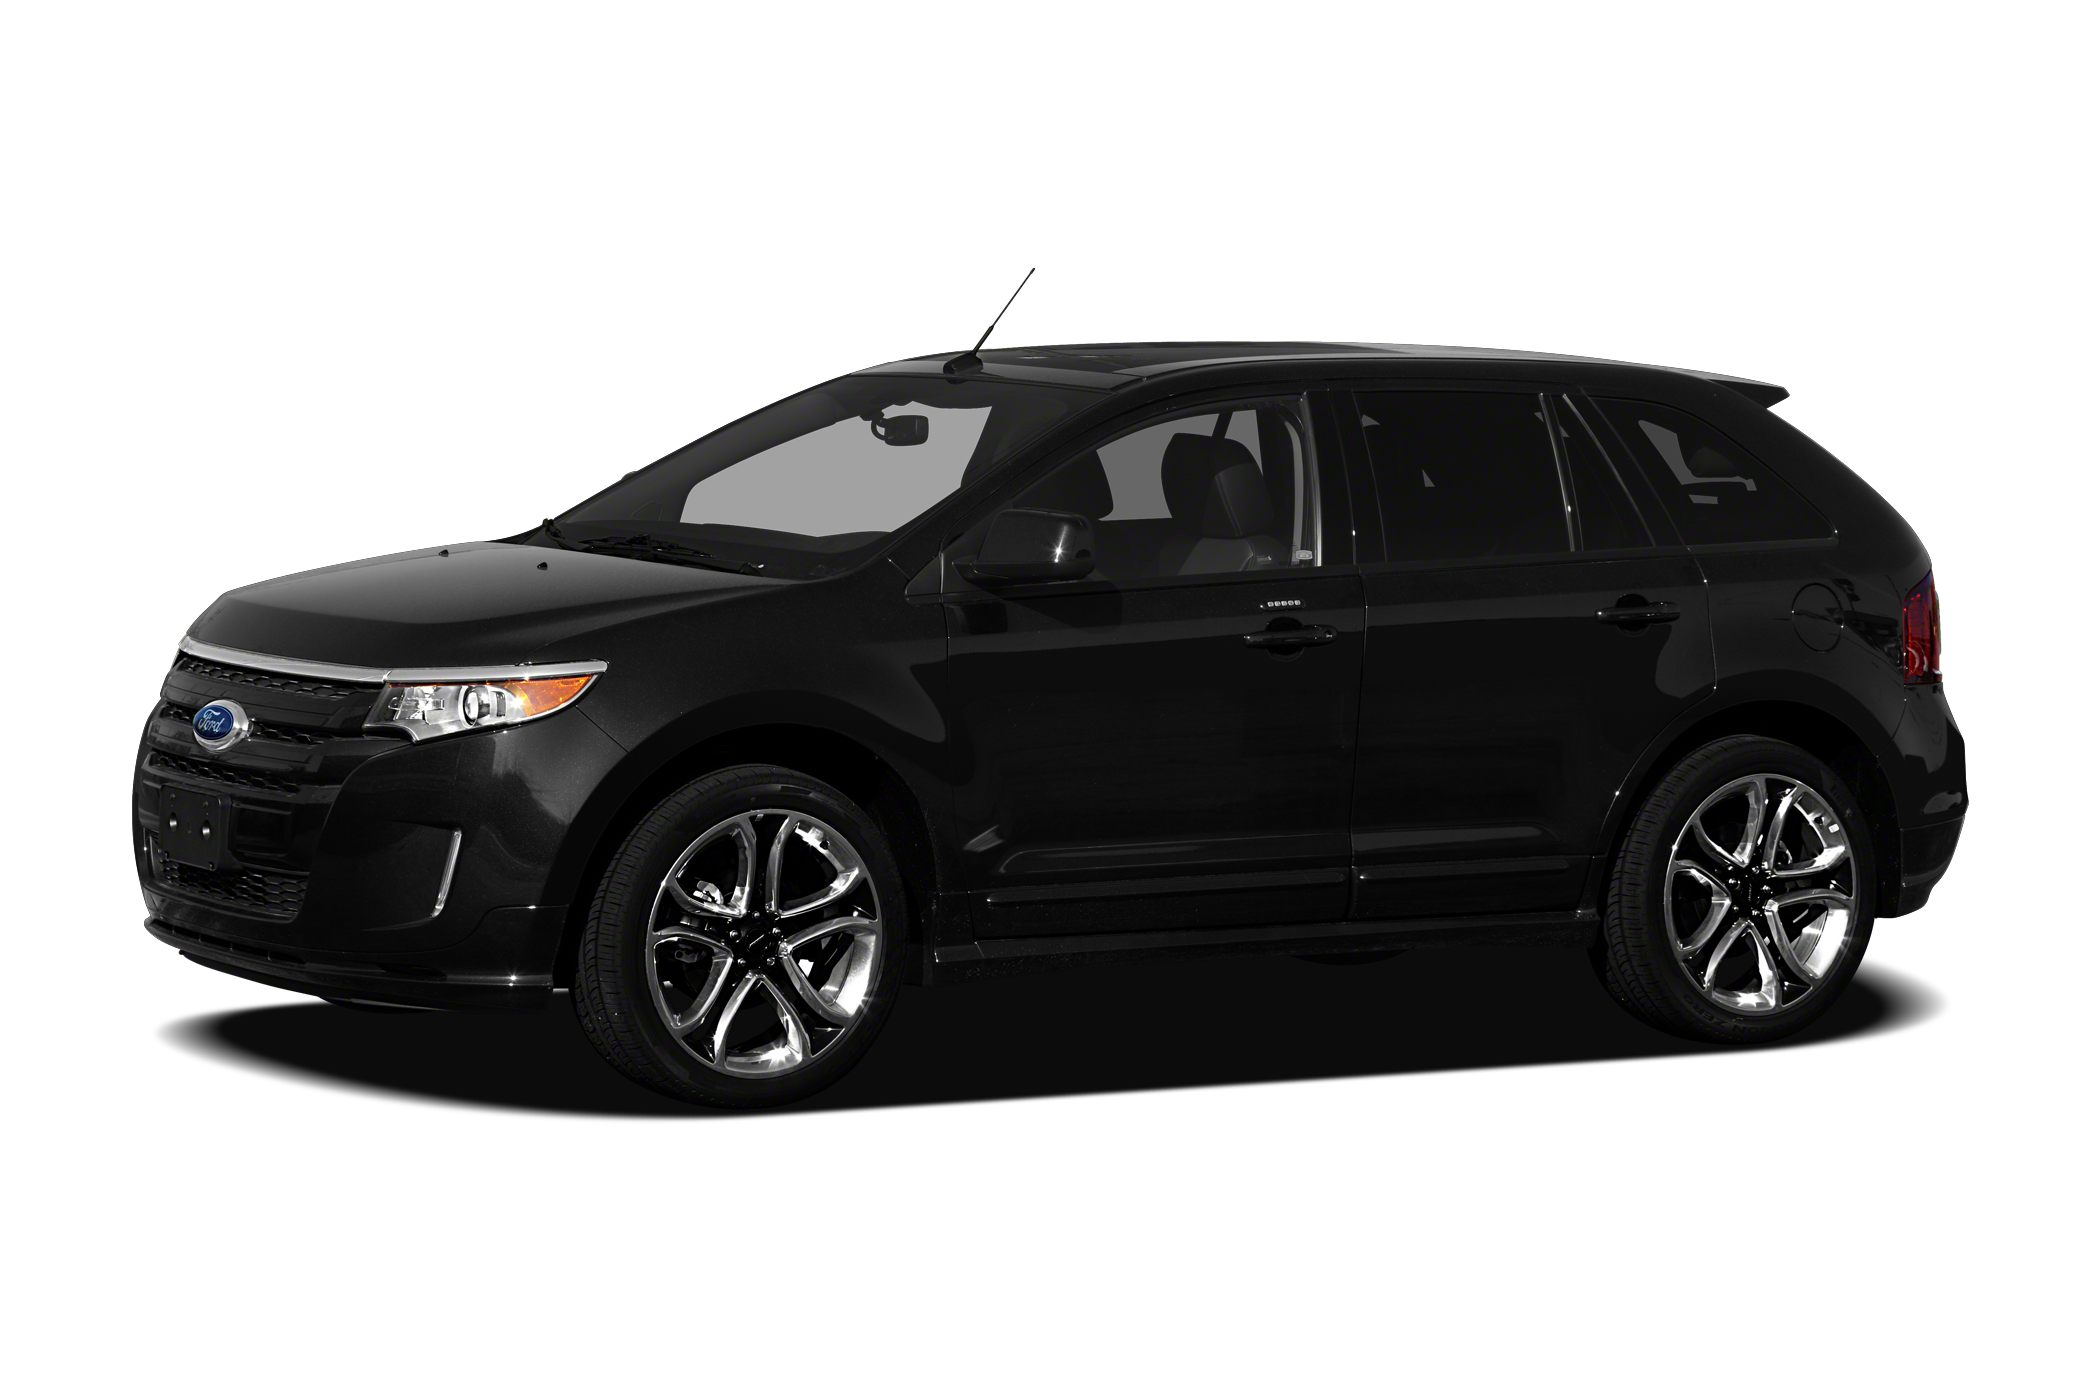 2011 Ford Edge Sport SUV for sale in Mooresville for $25,985 with 81,356 miles